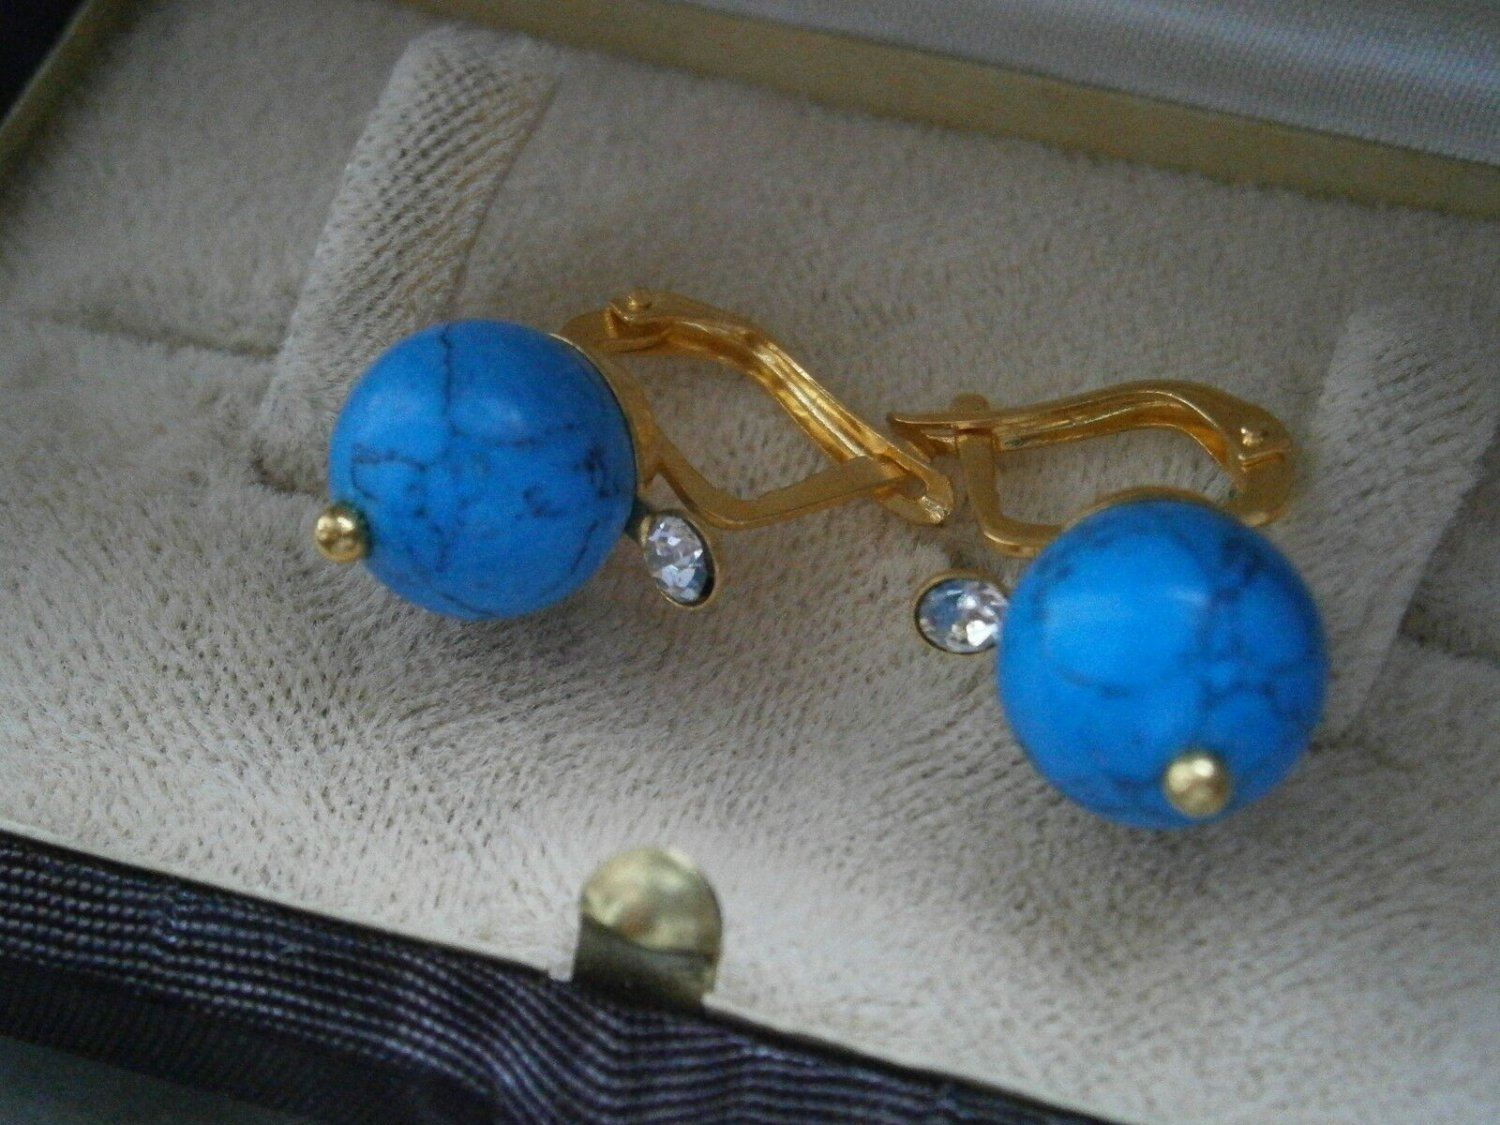 GOLD PLATED EARRINGS with turquoise stone and white Swarovski crystals Original in gift box